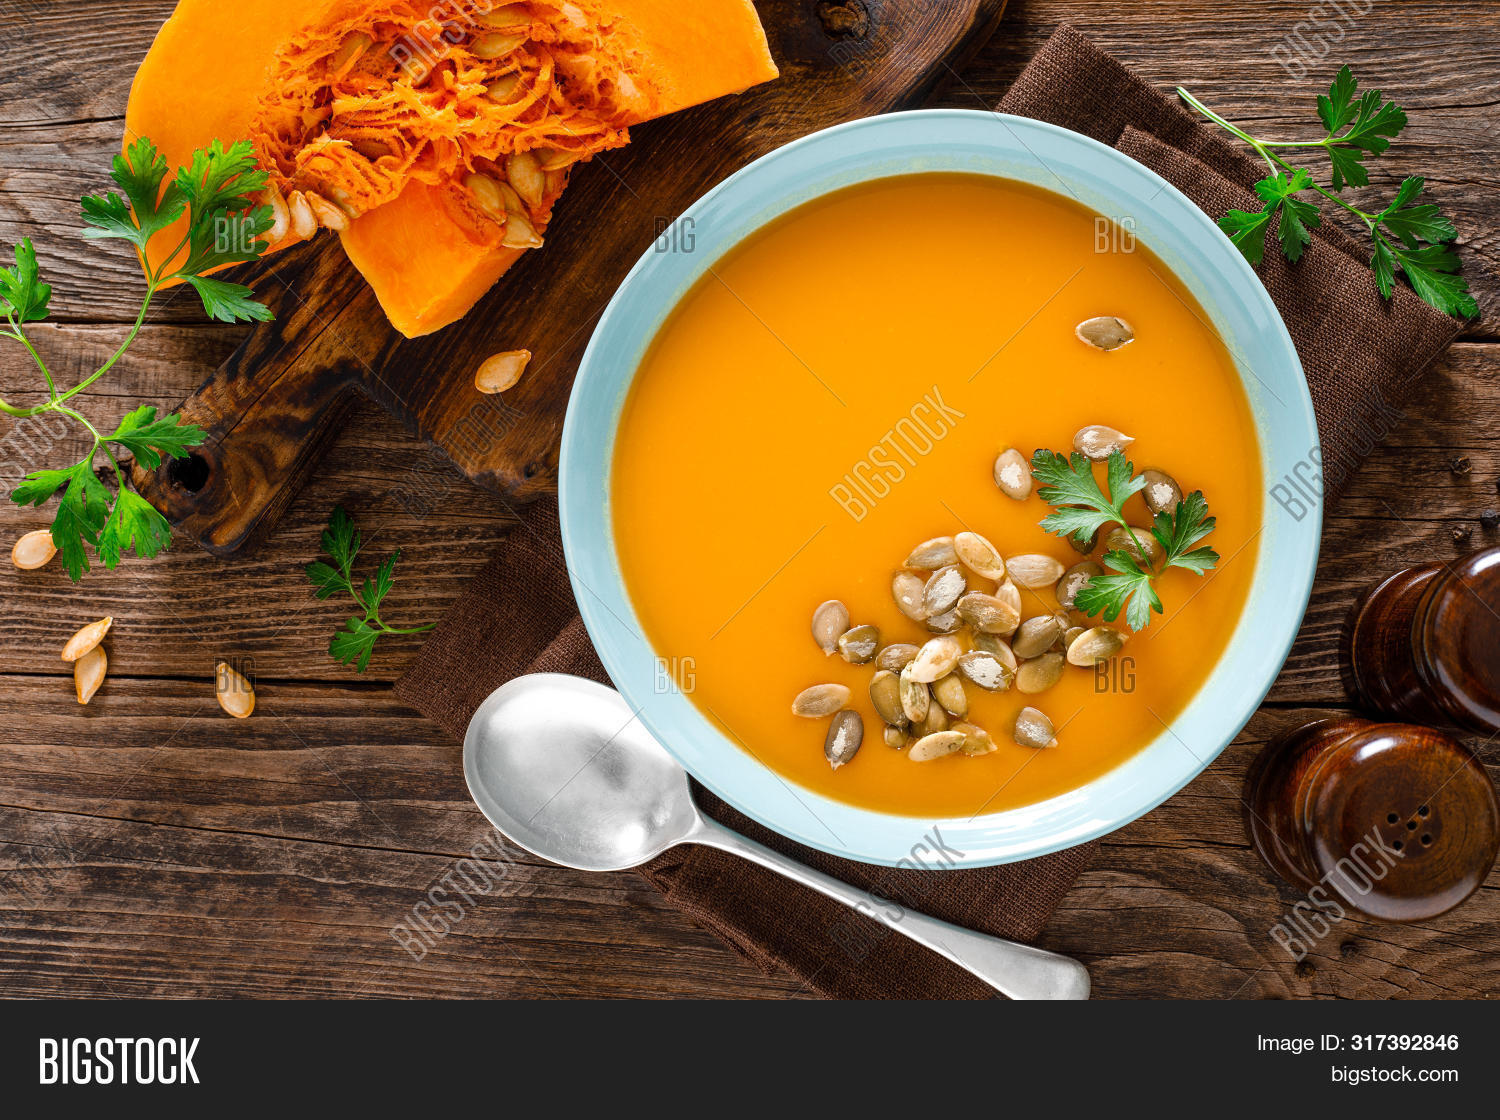 autumn,background,bowl,cooked,cooking,cream,creamy,cuisine,delicious,diet,dinner,dish,eating,fall,food,fresh,gourmet,halloween,healthy,homemade,hot,kitchen,lunch,mashed,meal,natural,orange,parsley,plate,pumpkin,puree,recipe,rustic,seasonal,seeds,smooth,soup,spoon,squash,table,tasty,thanksgiving,top,traditional,vegan,vegetable,vegetarian,view,wooden,yellow